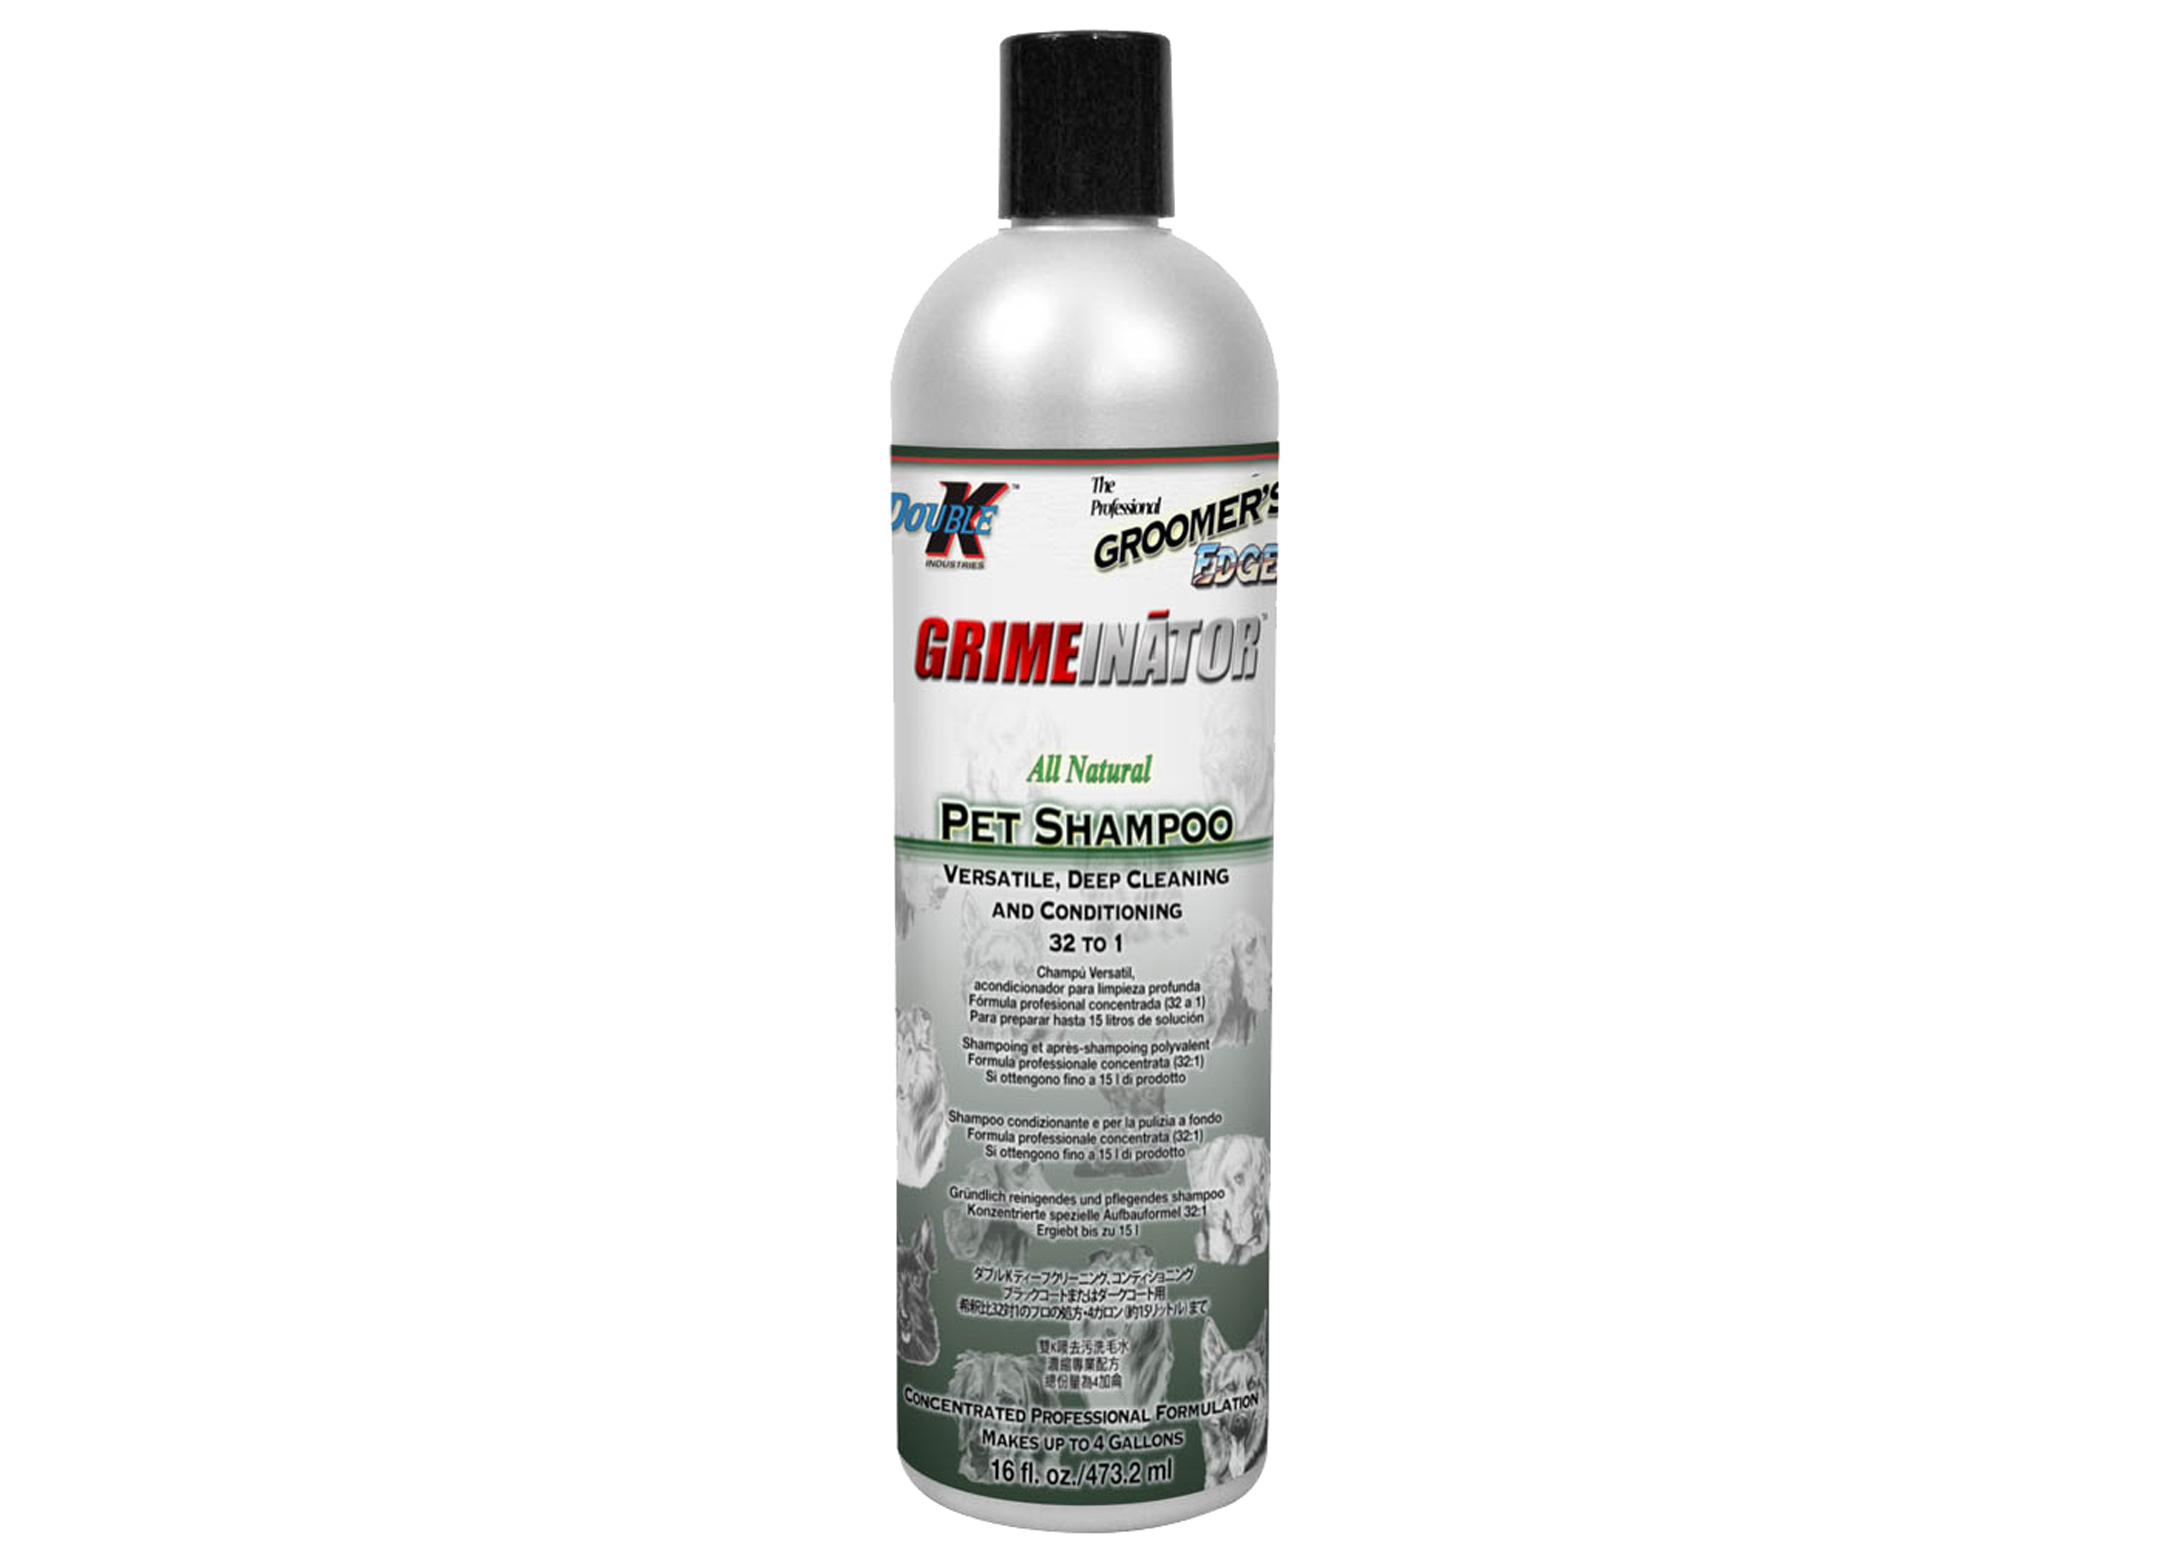 Double K Grimeinator Shampoo For Dogs, Cats And Horses